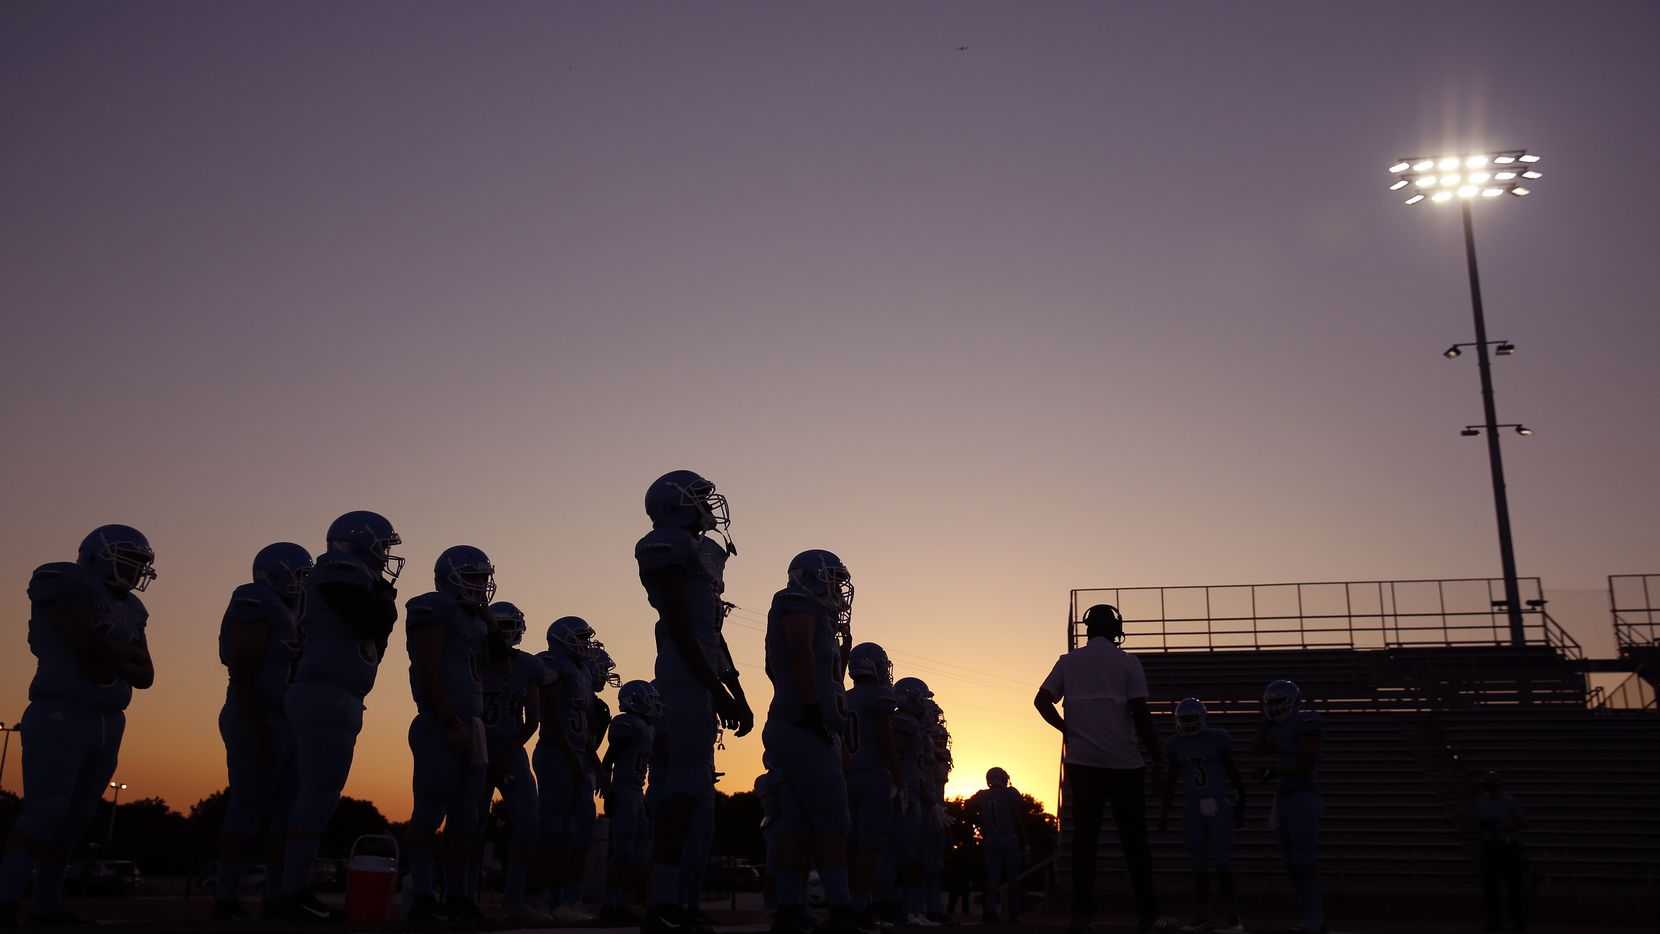 general football coronavirus  As the sun sets behind Loos Stadium, the Thomas Jefferson football team waits to take the field against Pinkston in Addison, Texas, Thursday, October 1, 2020. This is the first Dallas ISD game of the season. (Tom Fox/The Dallas Morning News)